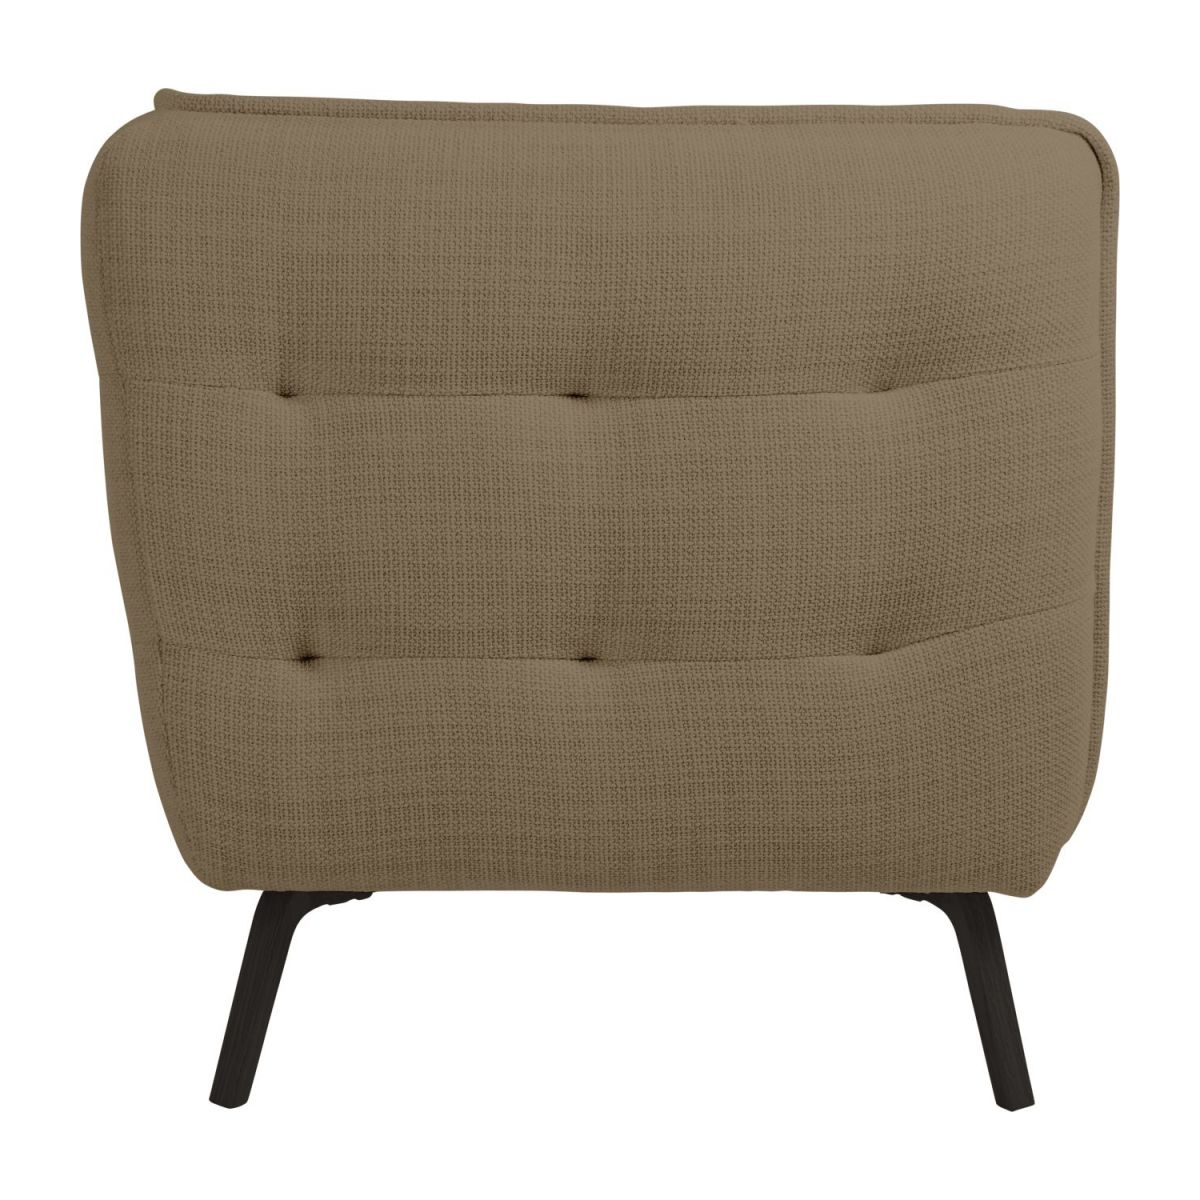 2 seater sofa in Fasoli fabric, jatoba brown and dark legs n°5